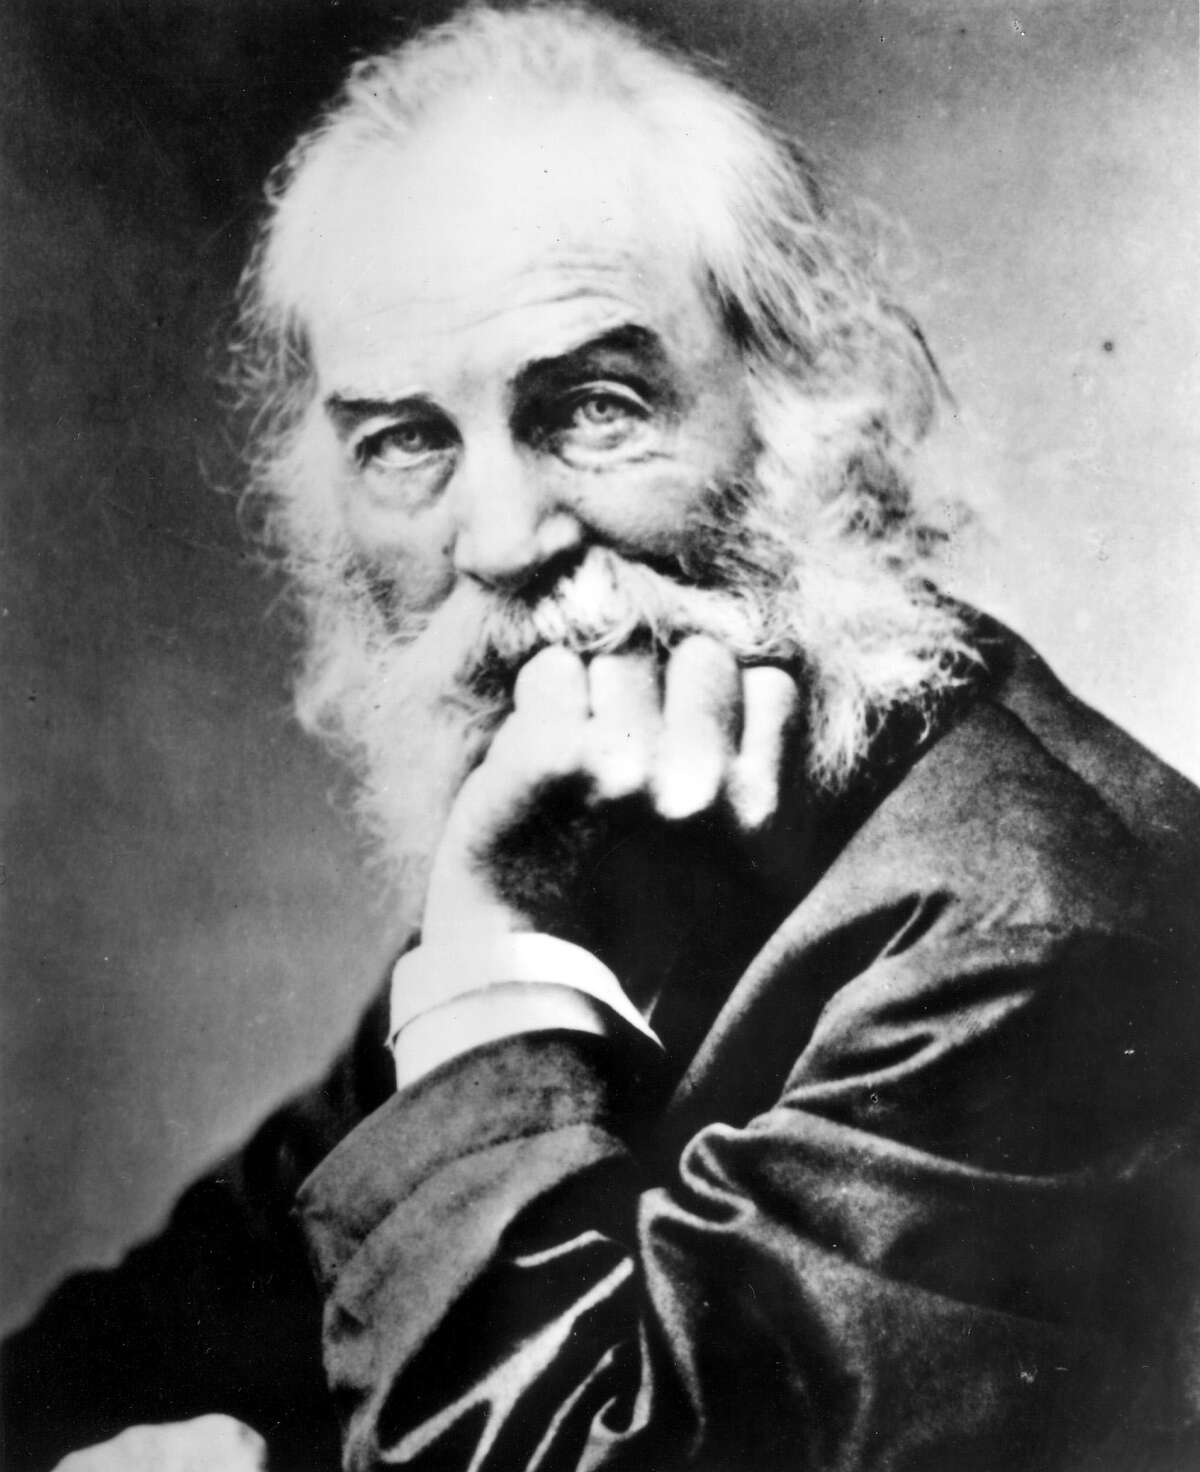 Walt Whitman, poet, died in Camden, N.J. on March 26, 1892. A celebration of his birthday is set for May 13 at 5:30 p.m. at 202 Main.